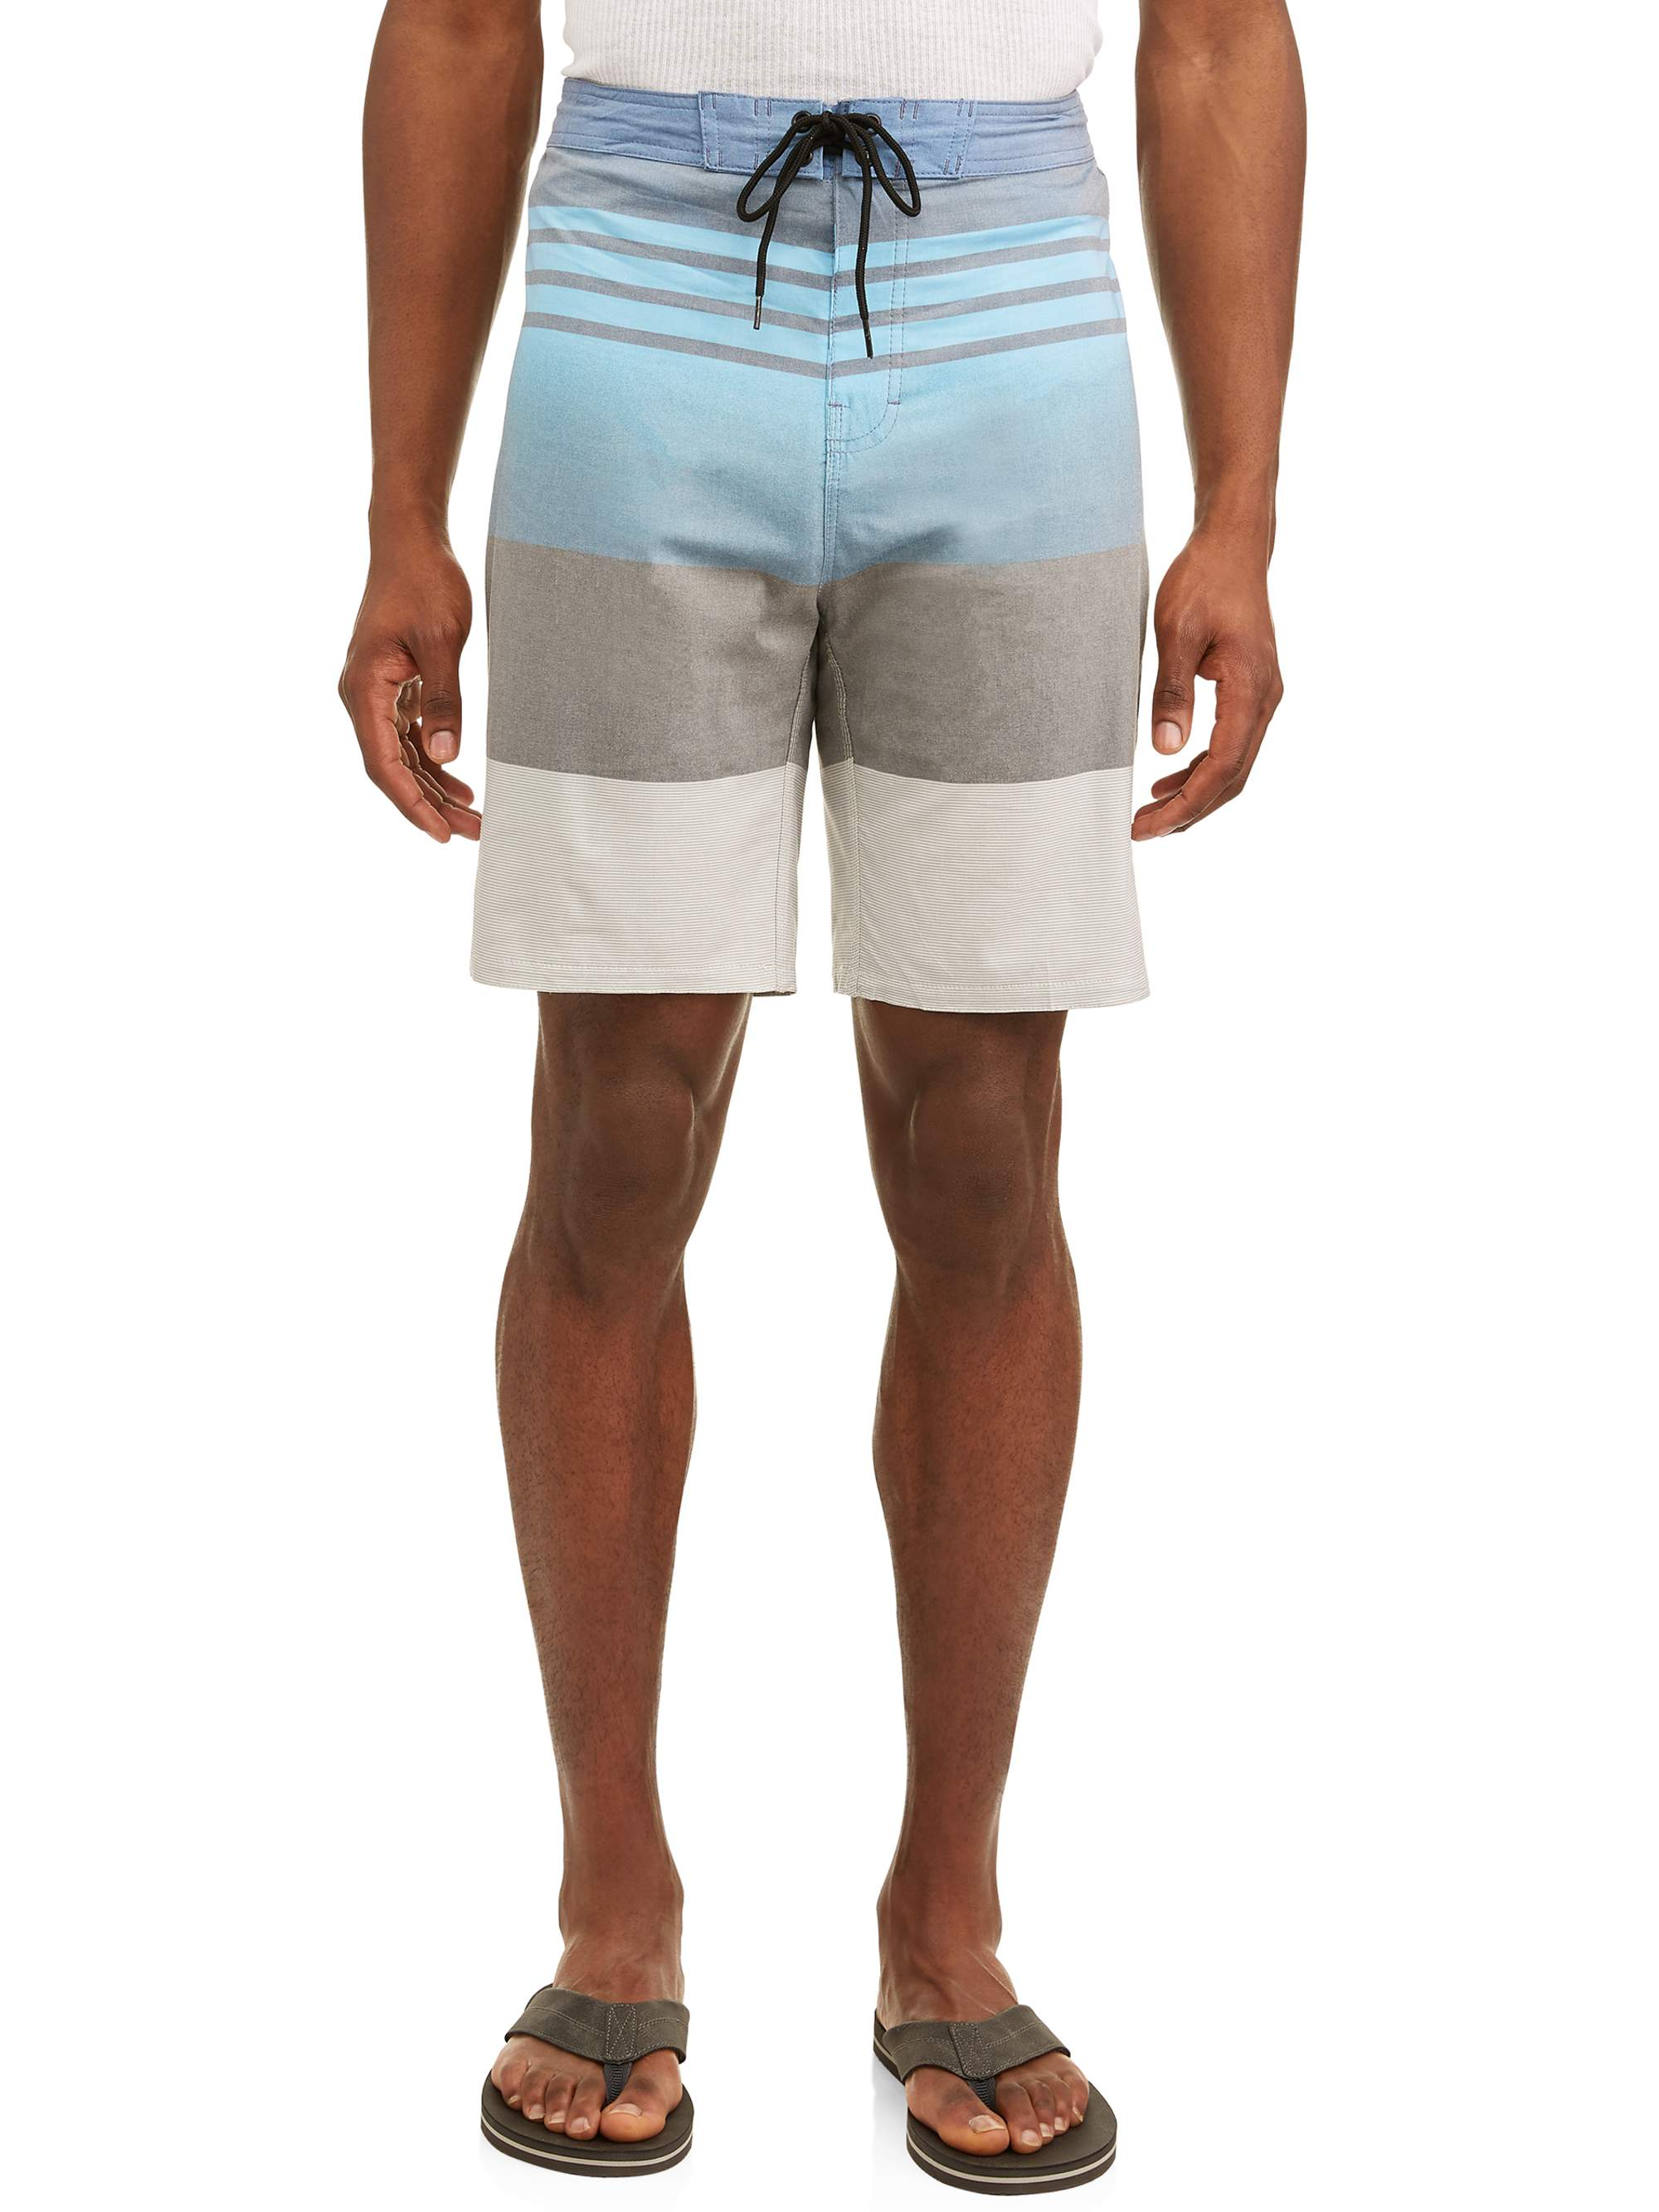 Men's Bolt Stripe Stretch E-Board Swim Short